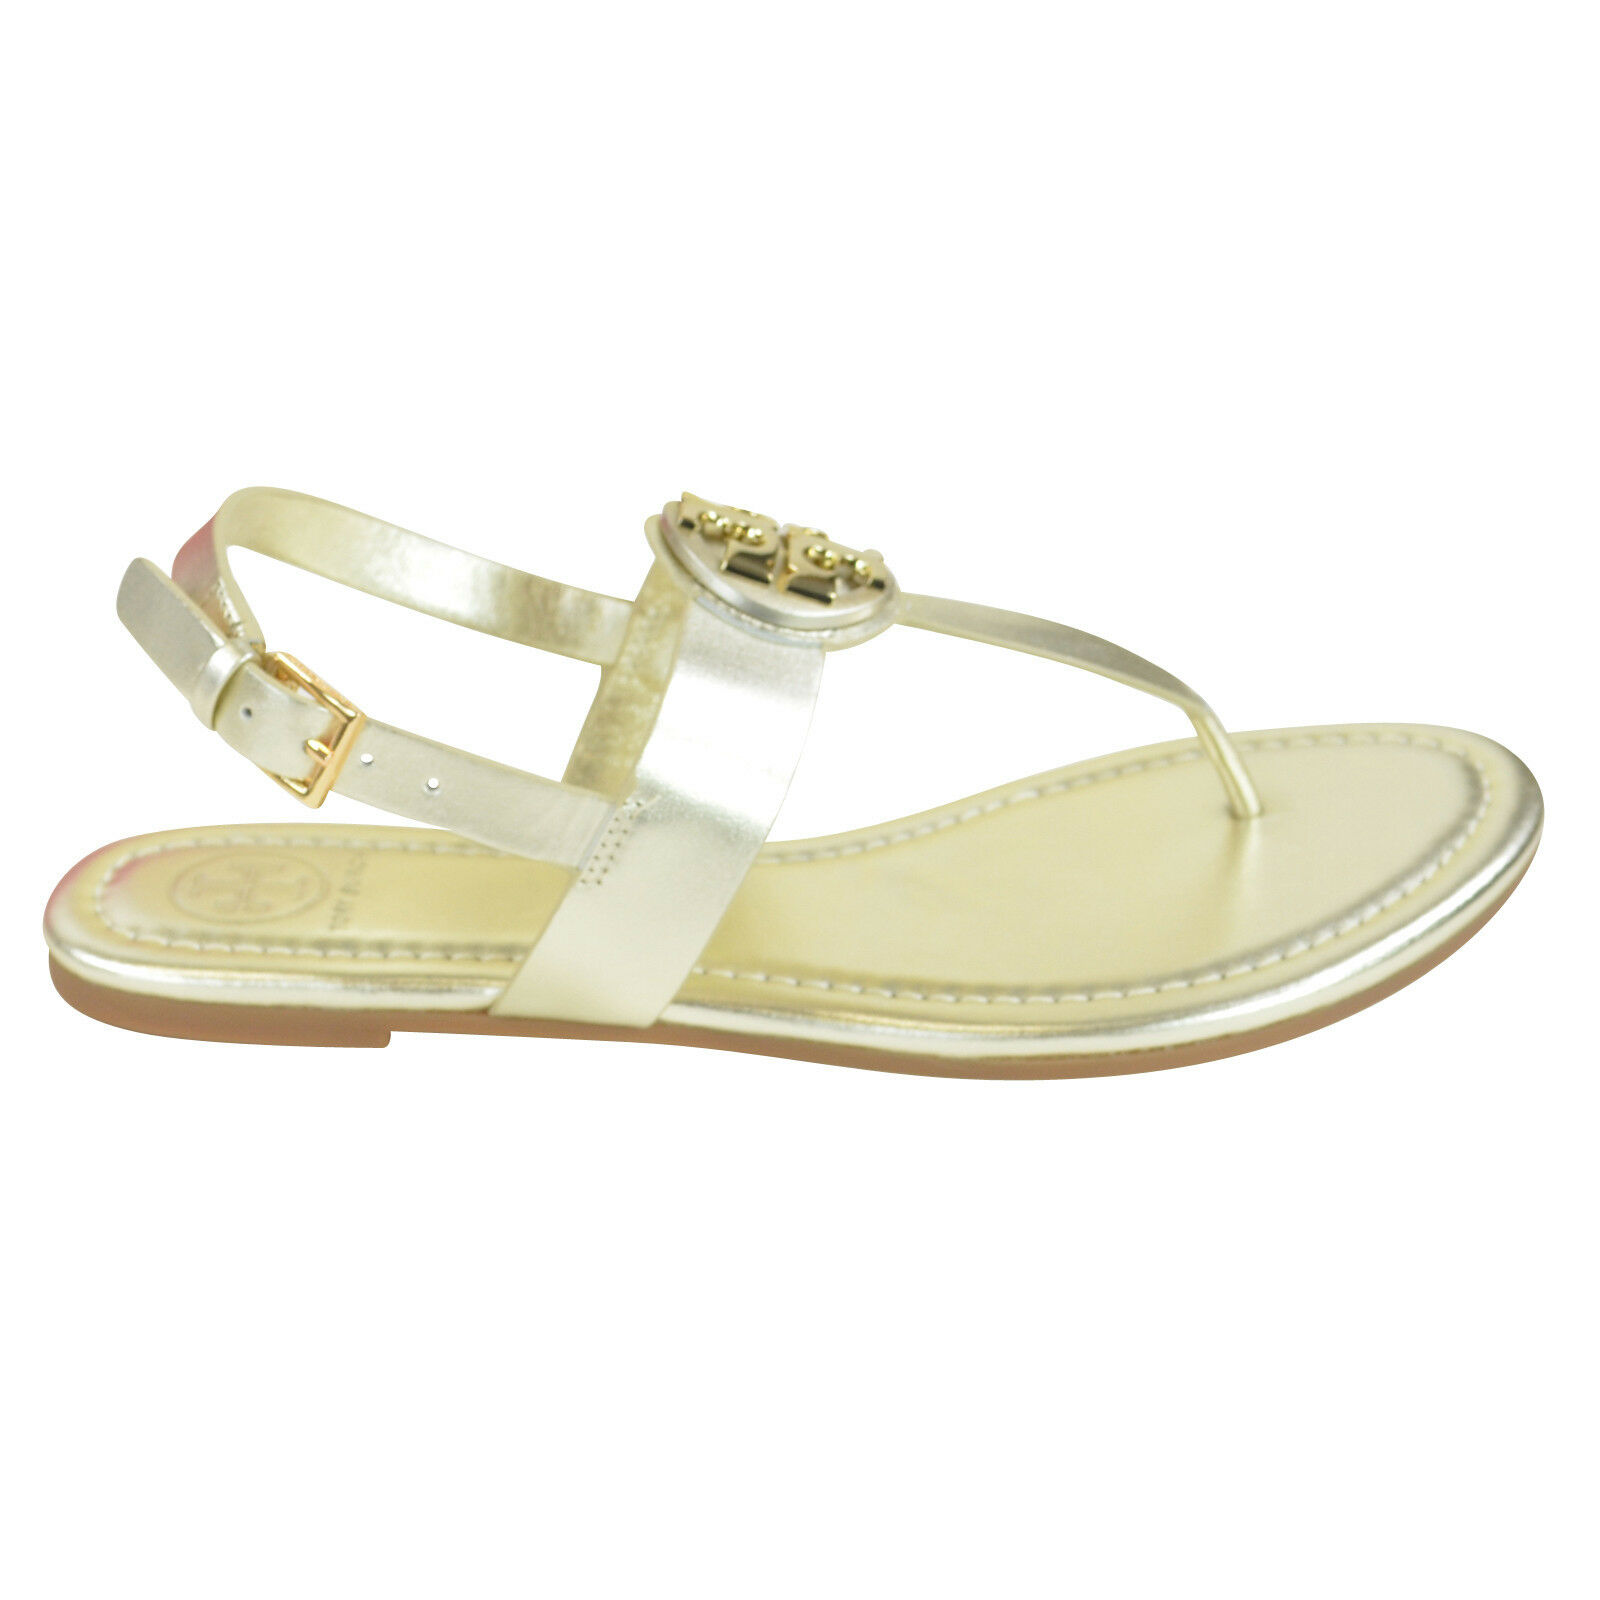 Tory Burch Bryce Flate Thong Sandal  Vegan Leather Leather Leather in Spark gold 7.5 0a3bee